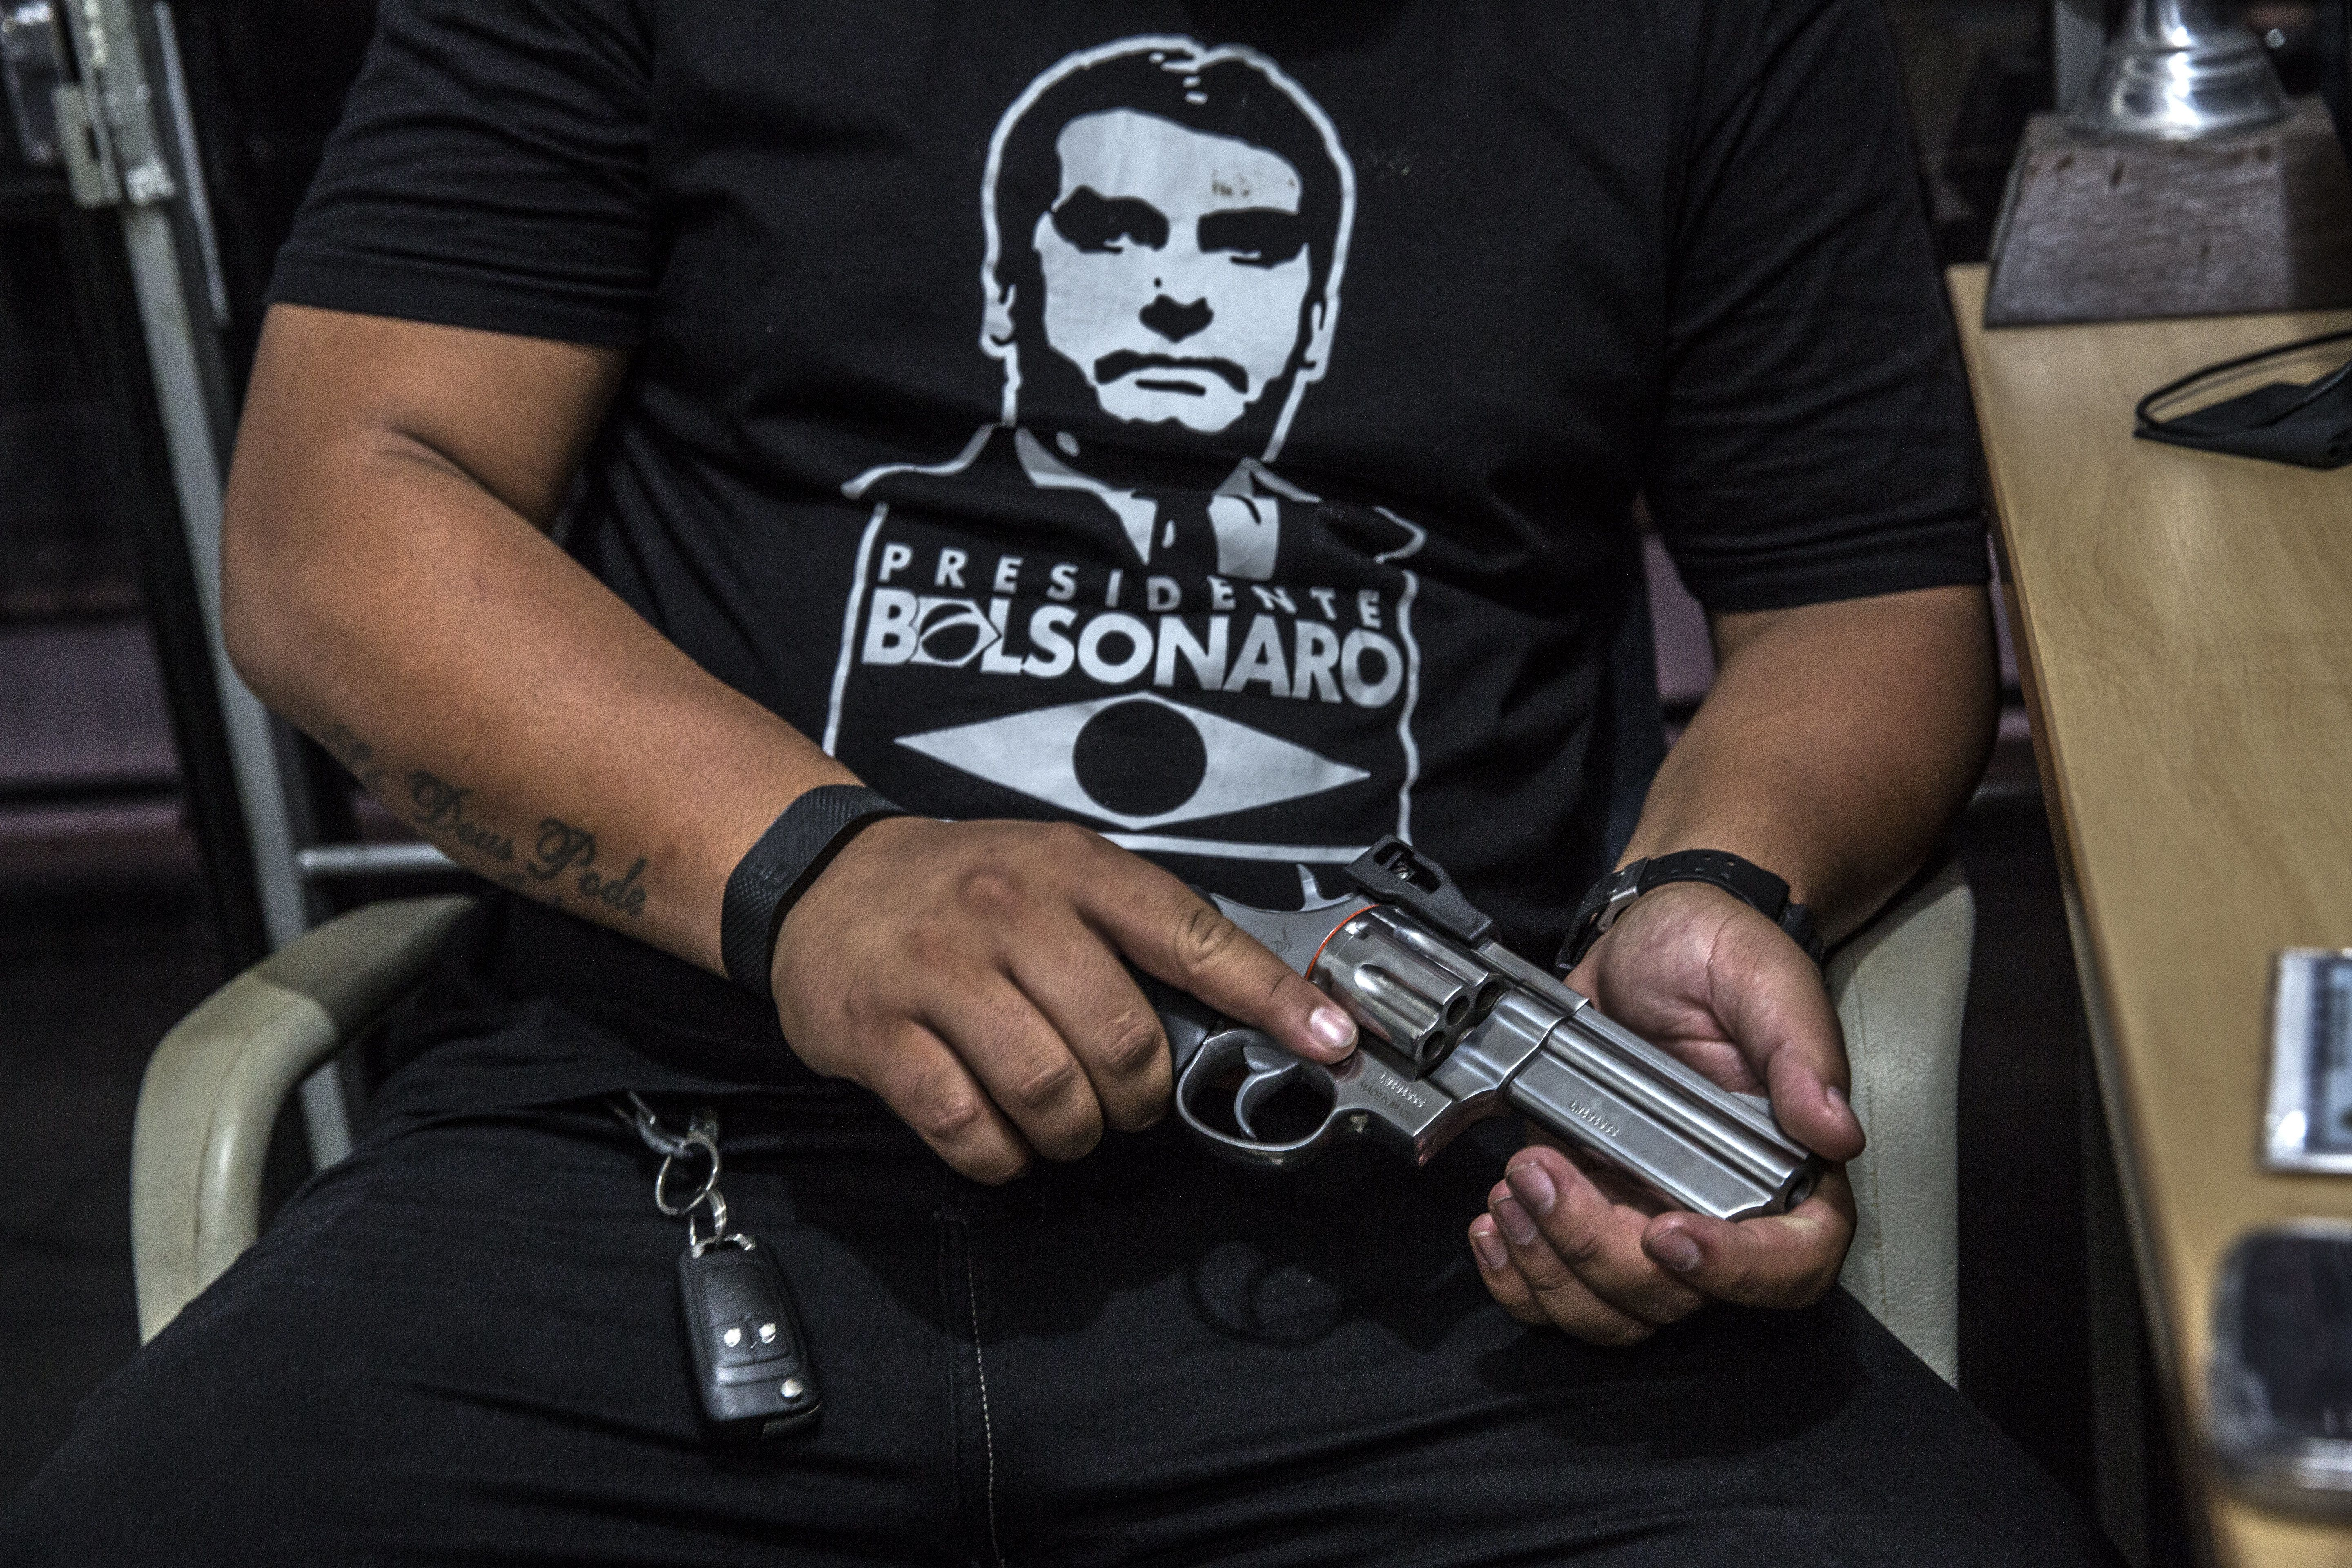 Brazil School Shooting Sparks A Familiar Gun Debate, NRA Talking Points And All